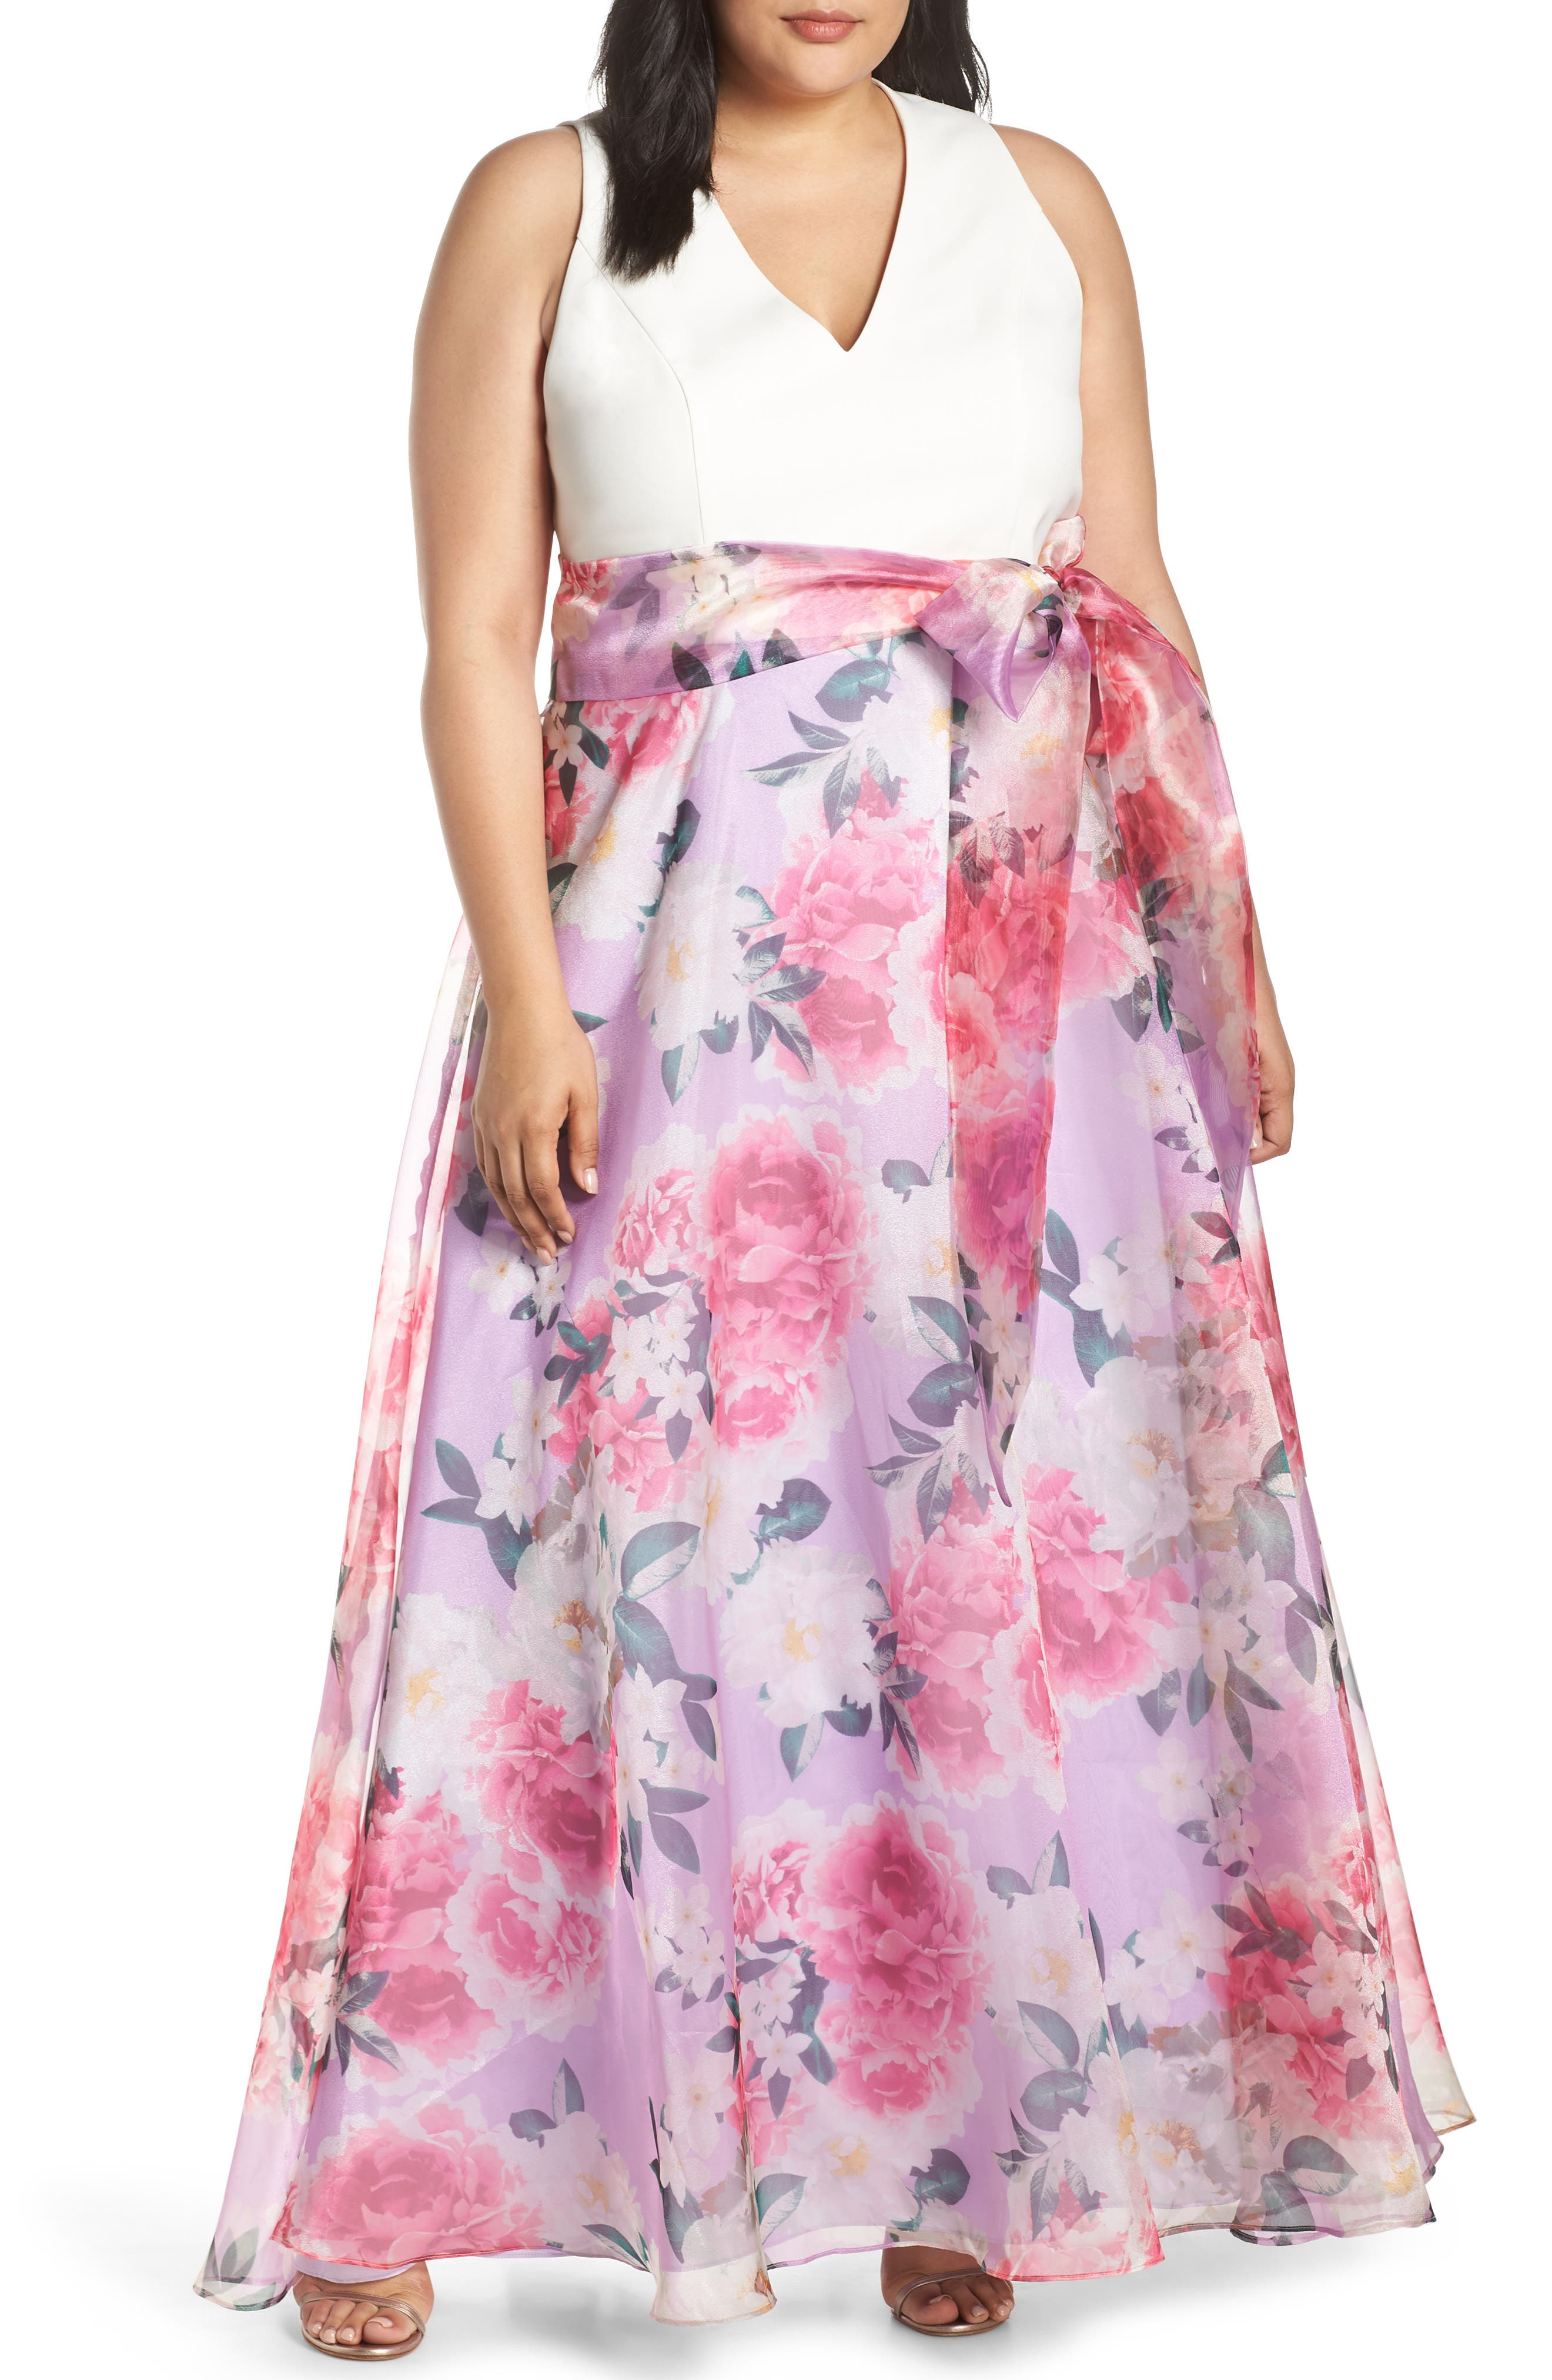 Plus Size Eliza J Floral Chiffon Evening Dress